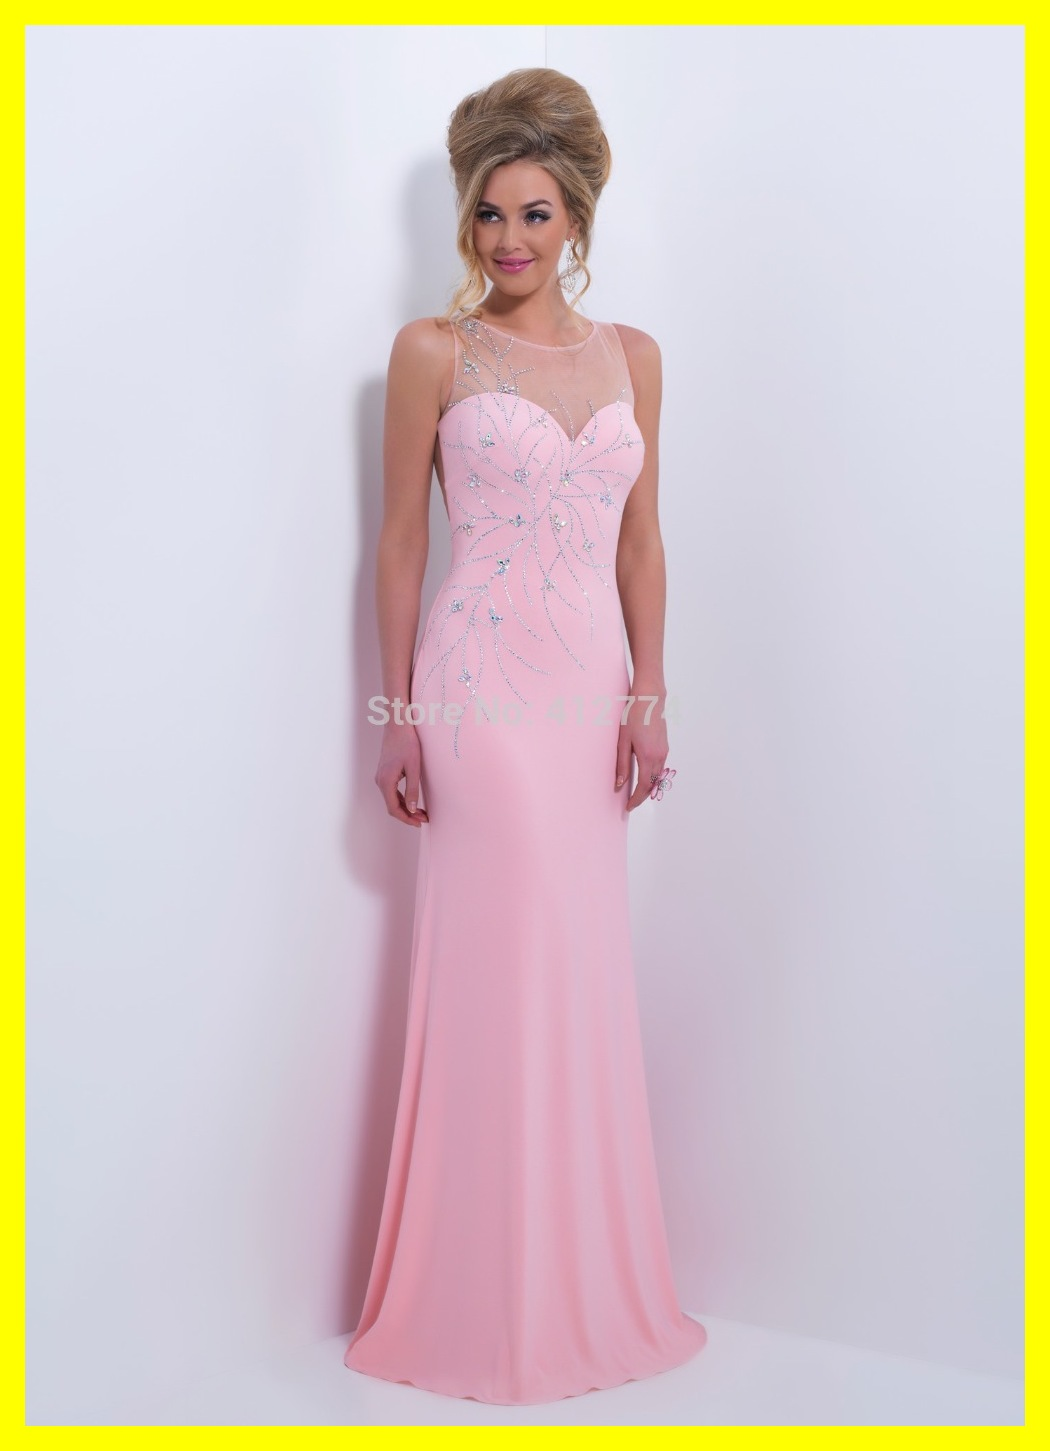 Pink and silver bridesmaid dresses cocktail dresses 2016 for Sell your wedding dress online for free